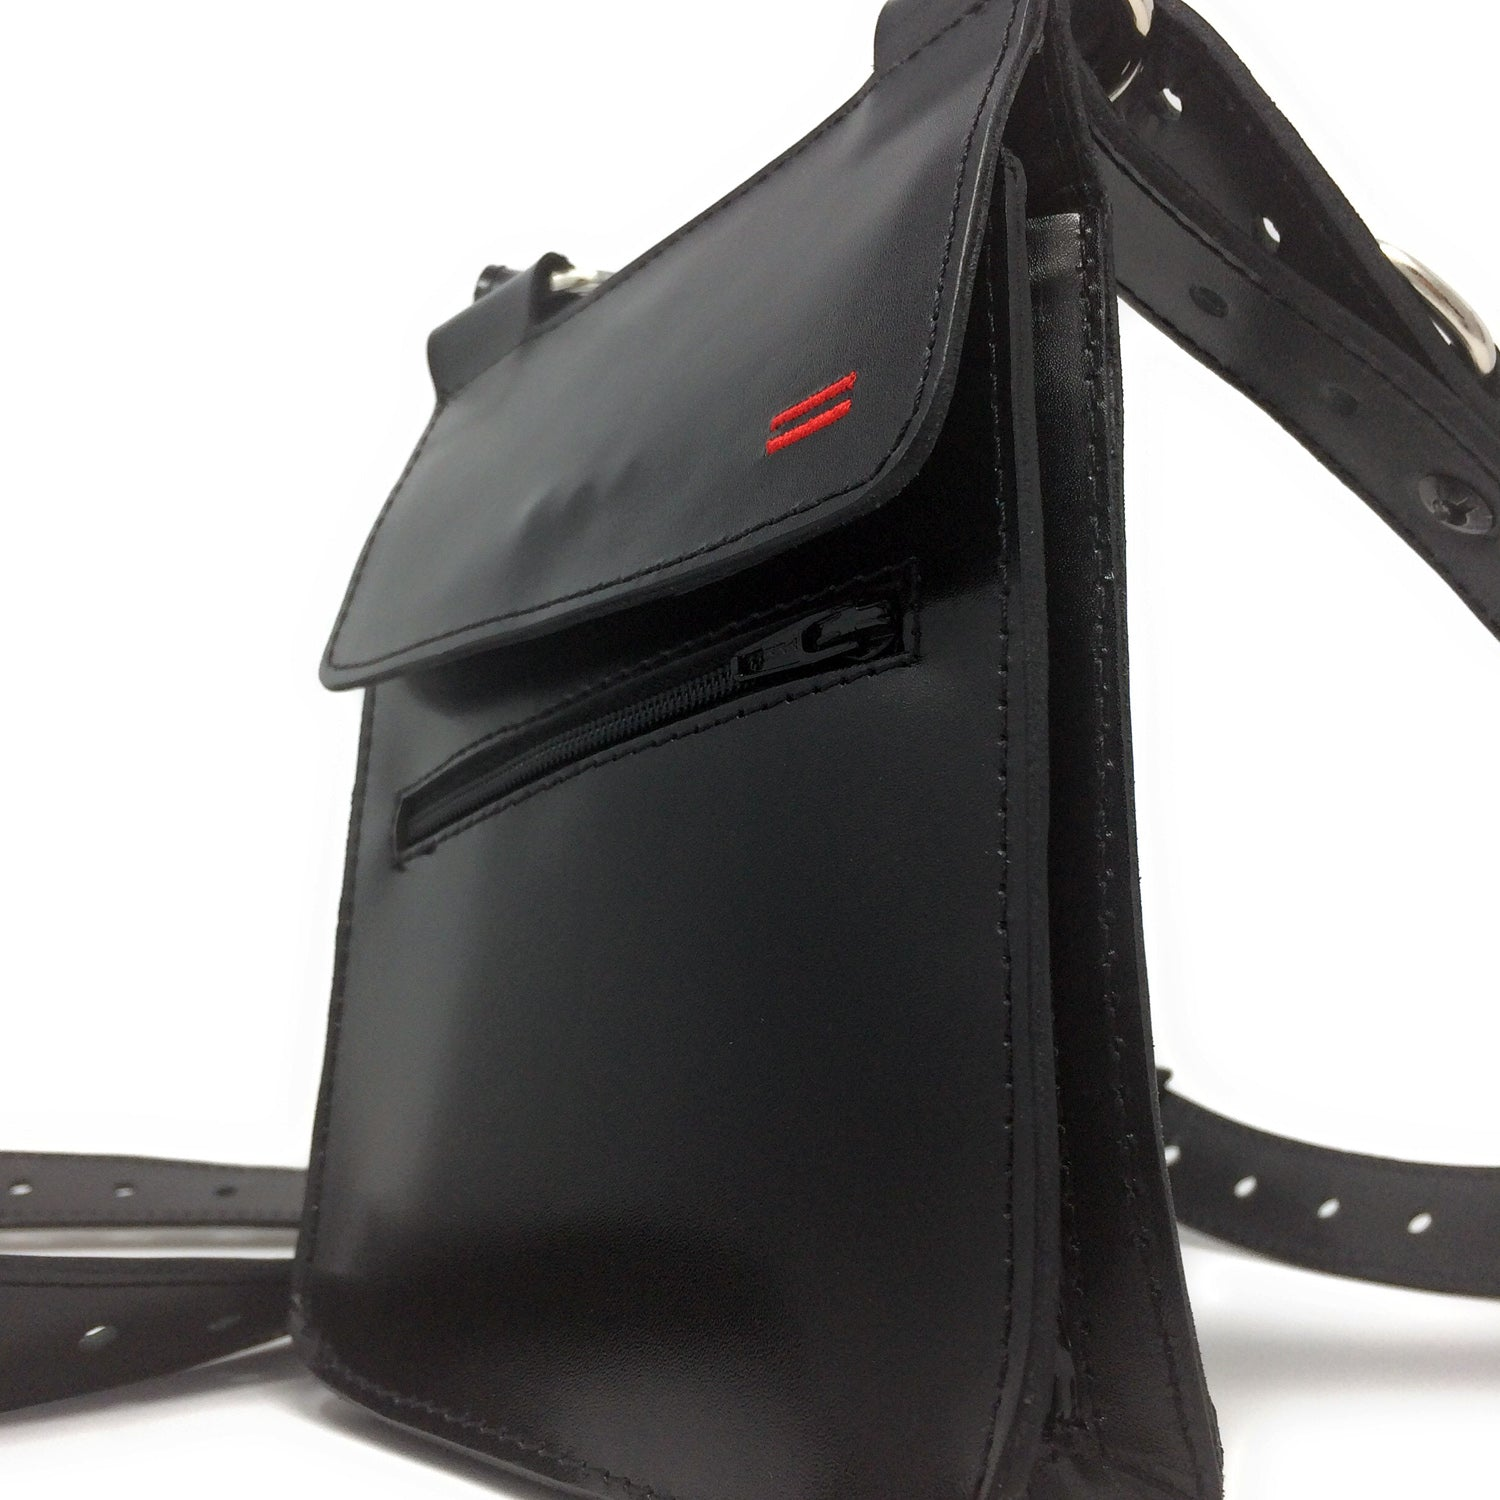 Genderfree Utility Holster with Wallet (Single or Dual) - NiK Kacy